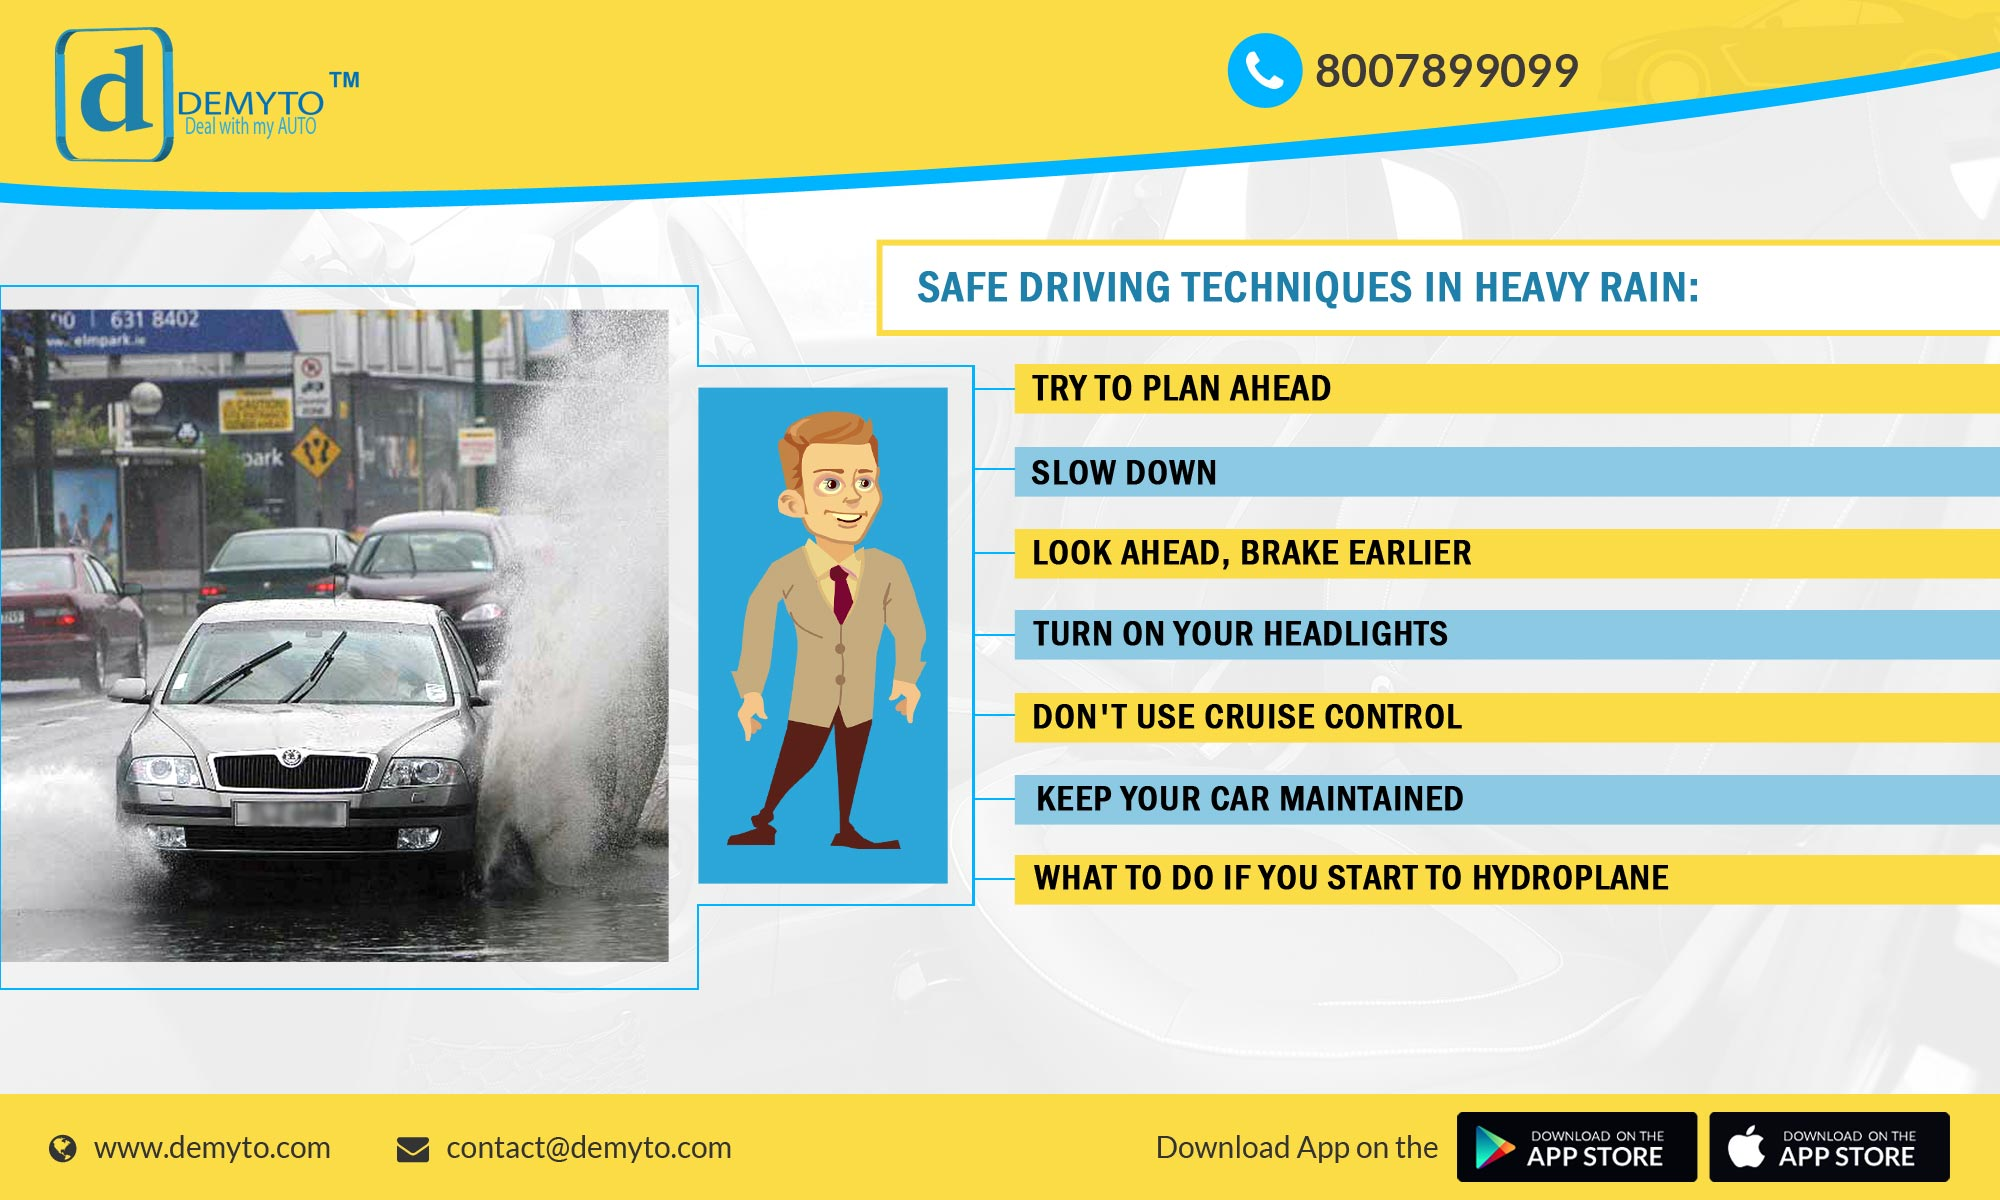 Avoid jeopardy while DRIVING in heavy rain